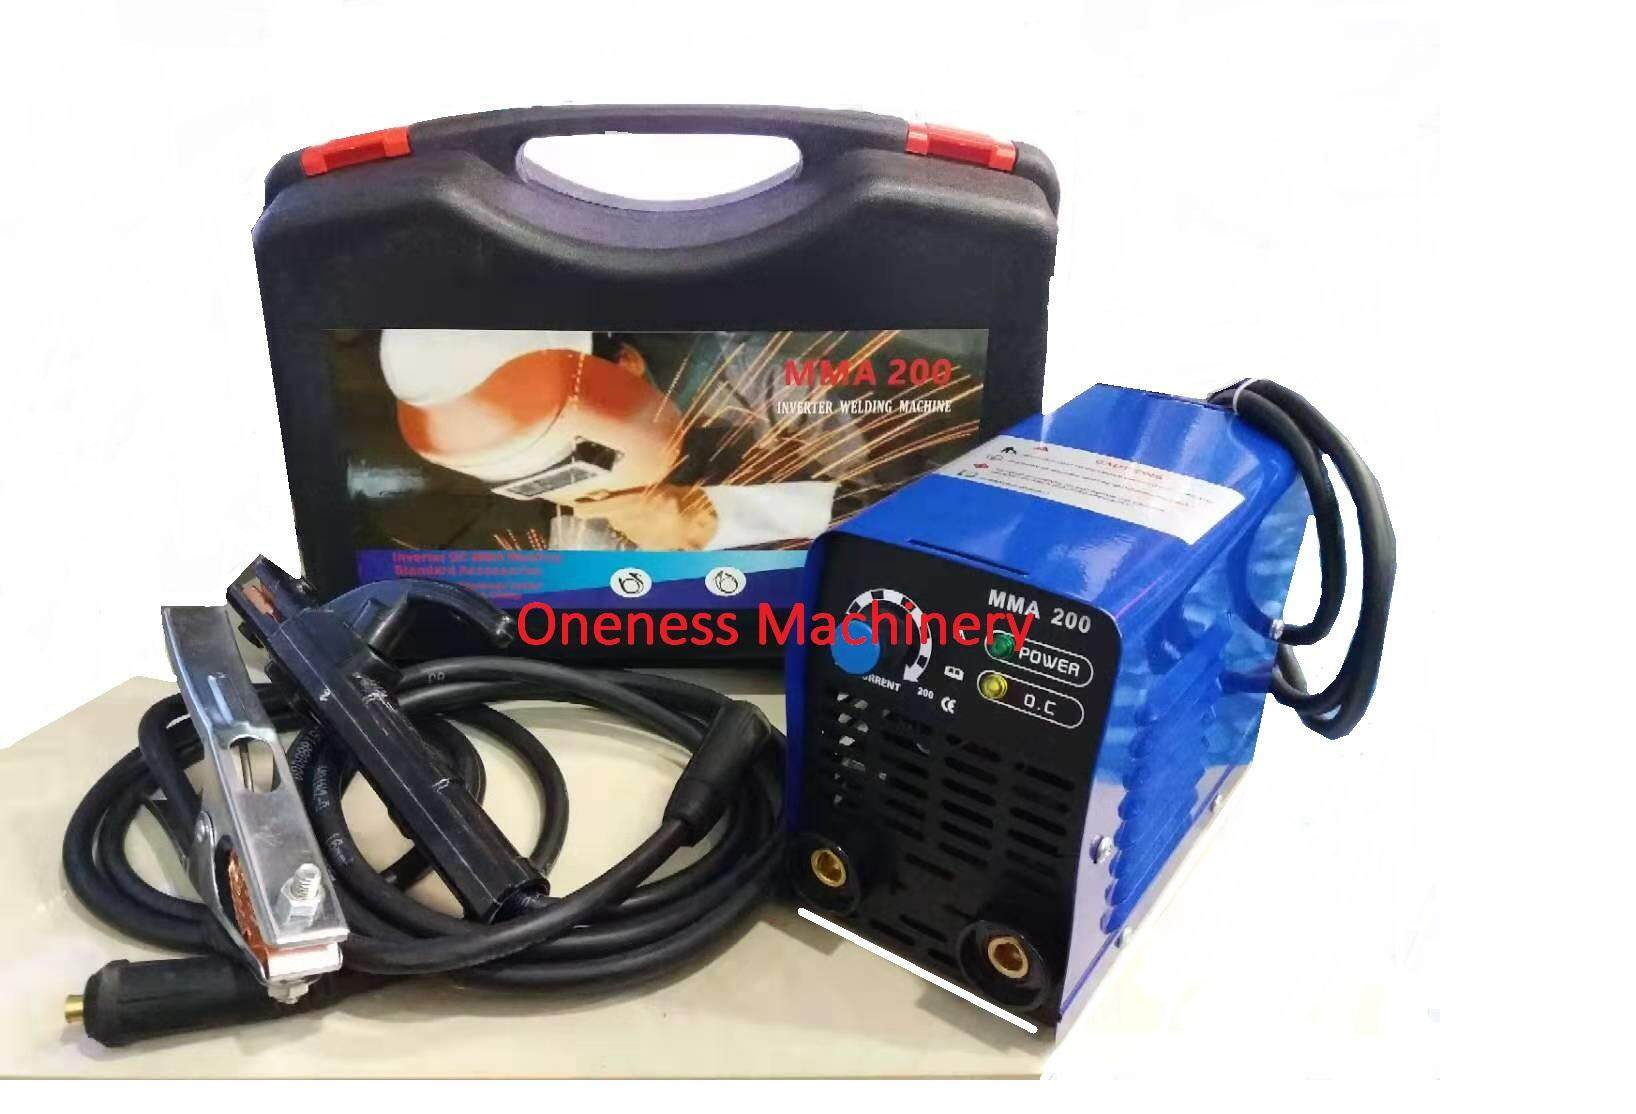 MMA 200 INVERTER WELDING MACHINERY SET